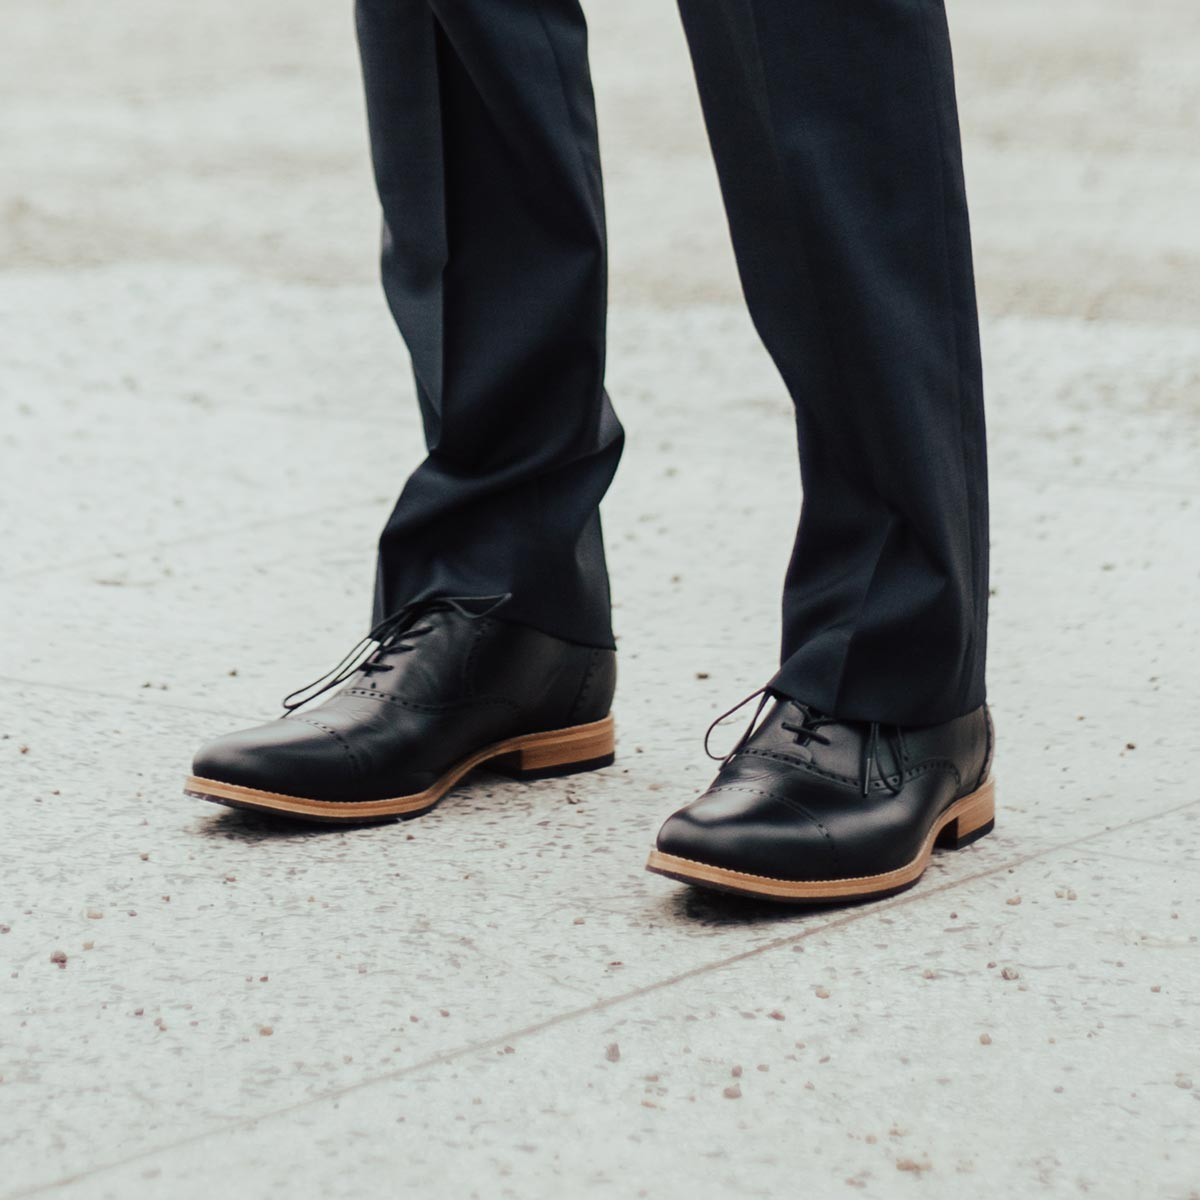 The Toronto Brogue - Poppy Barley